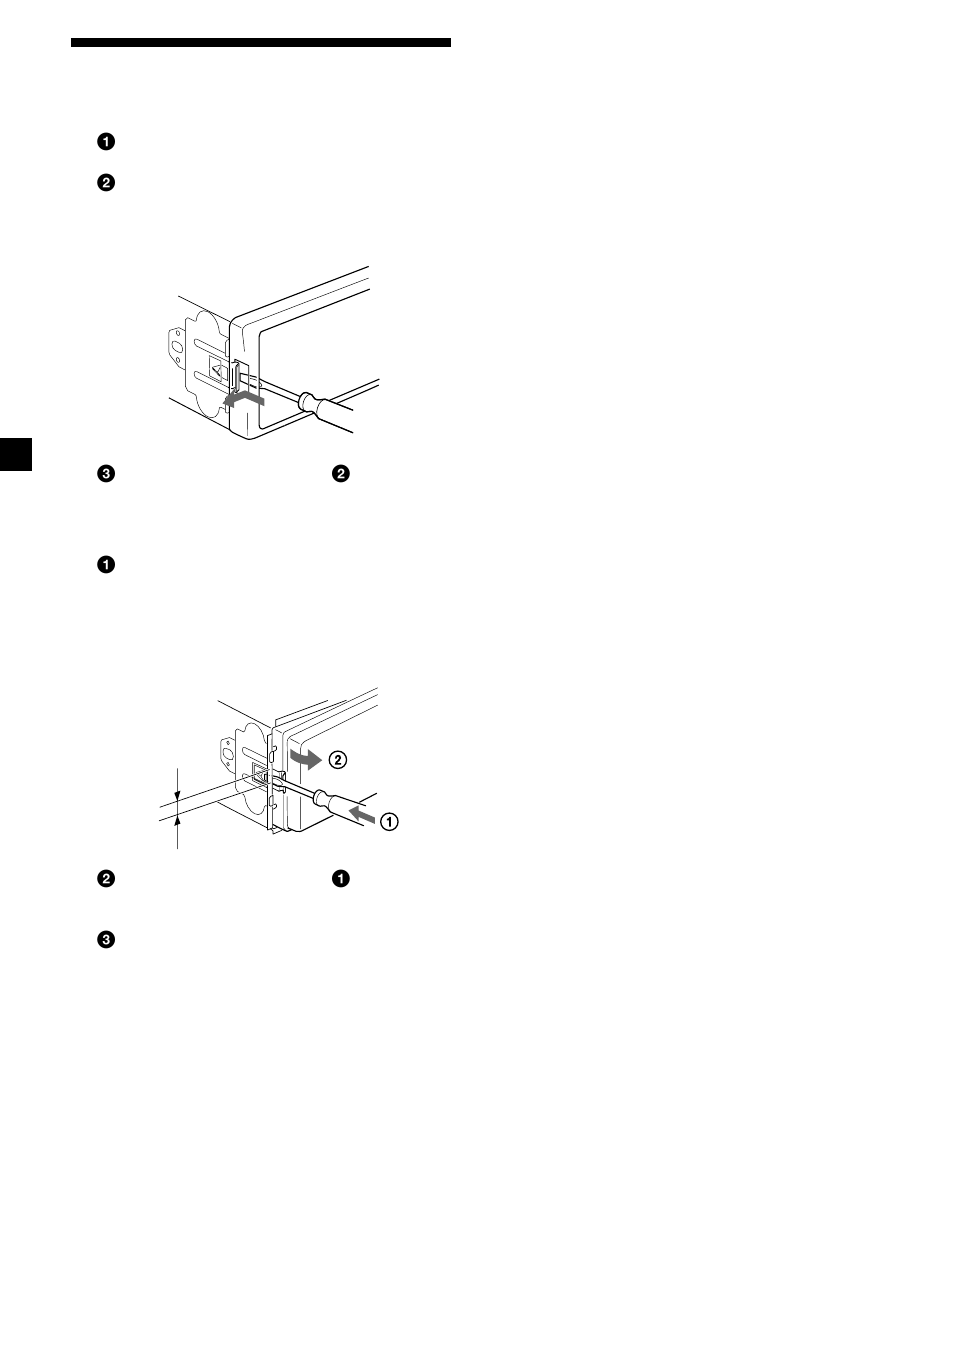 sony cdx l410 page42 20 ausbauen des ger�ts sony cdx l410 user manual page 42 112 sony cdx l410x wiring diagram at mr168.co